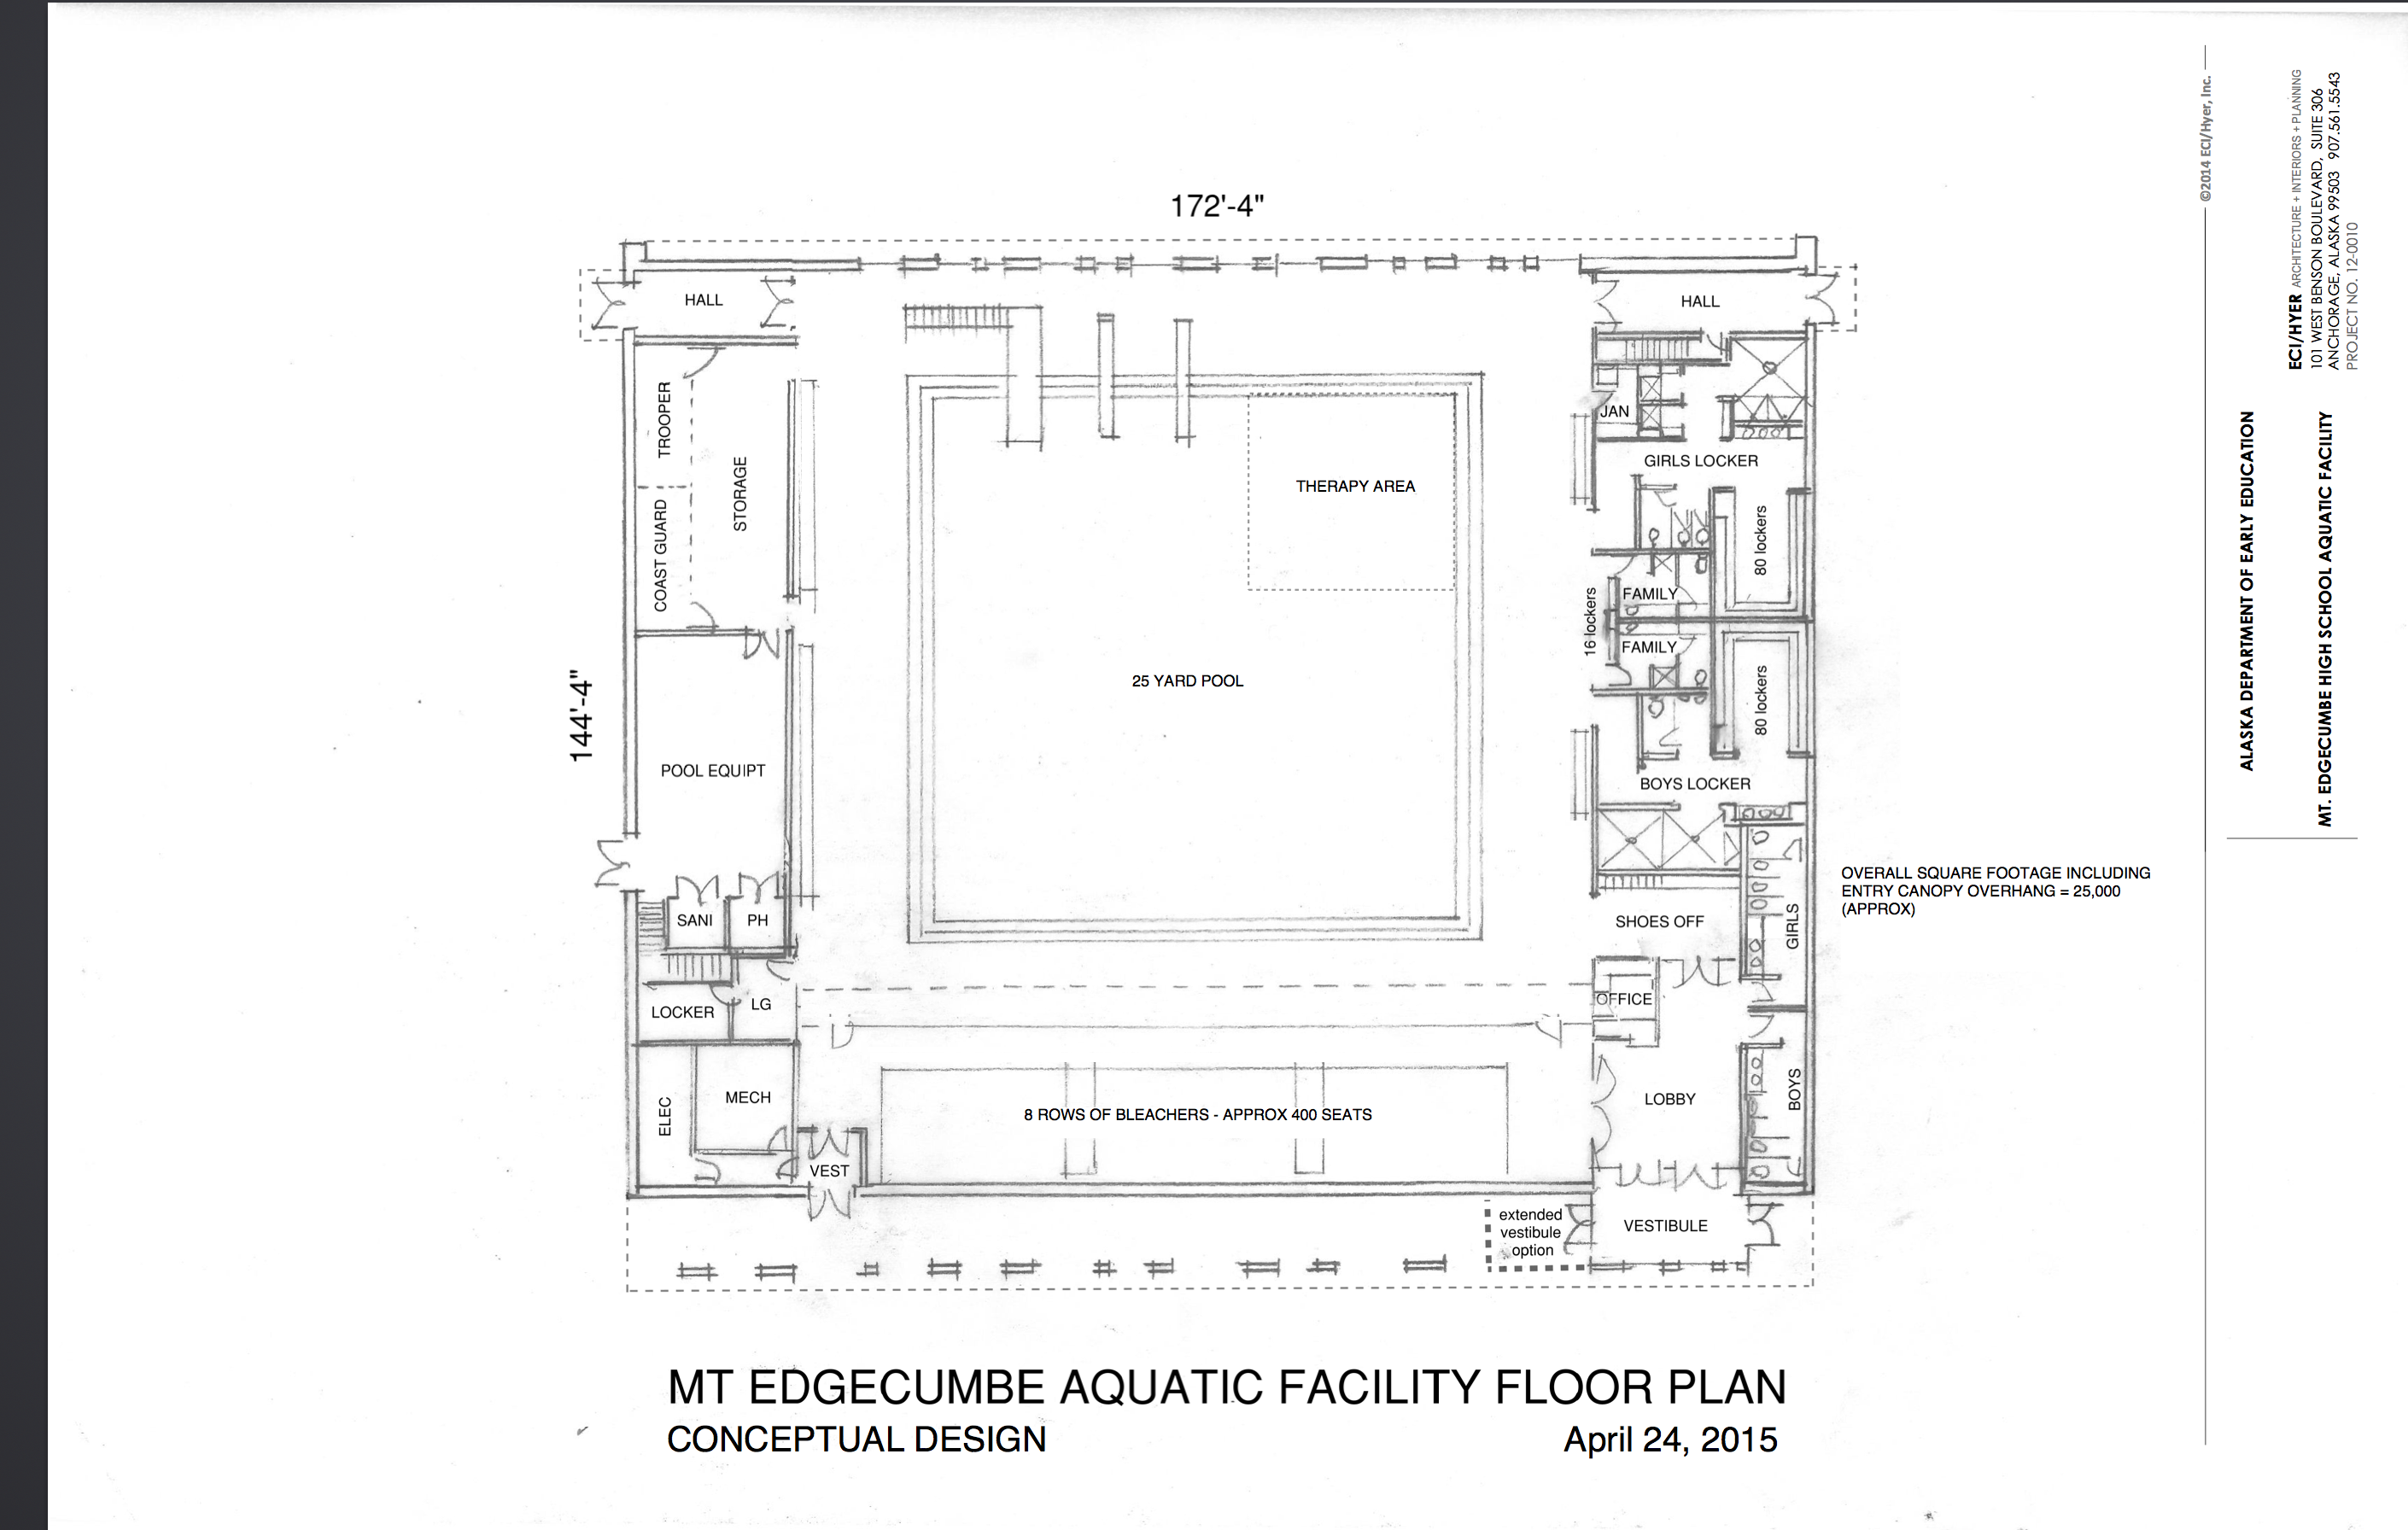 Mehsac conceptual floor plan kcaw - Florida building code public swimming pools ...